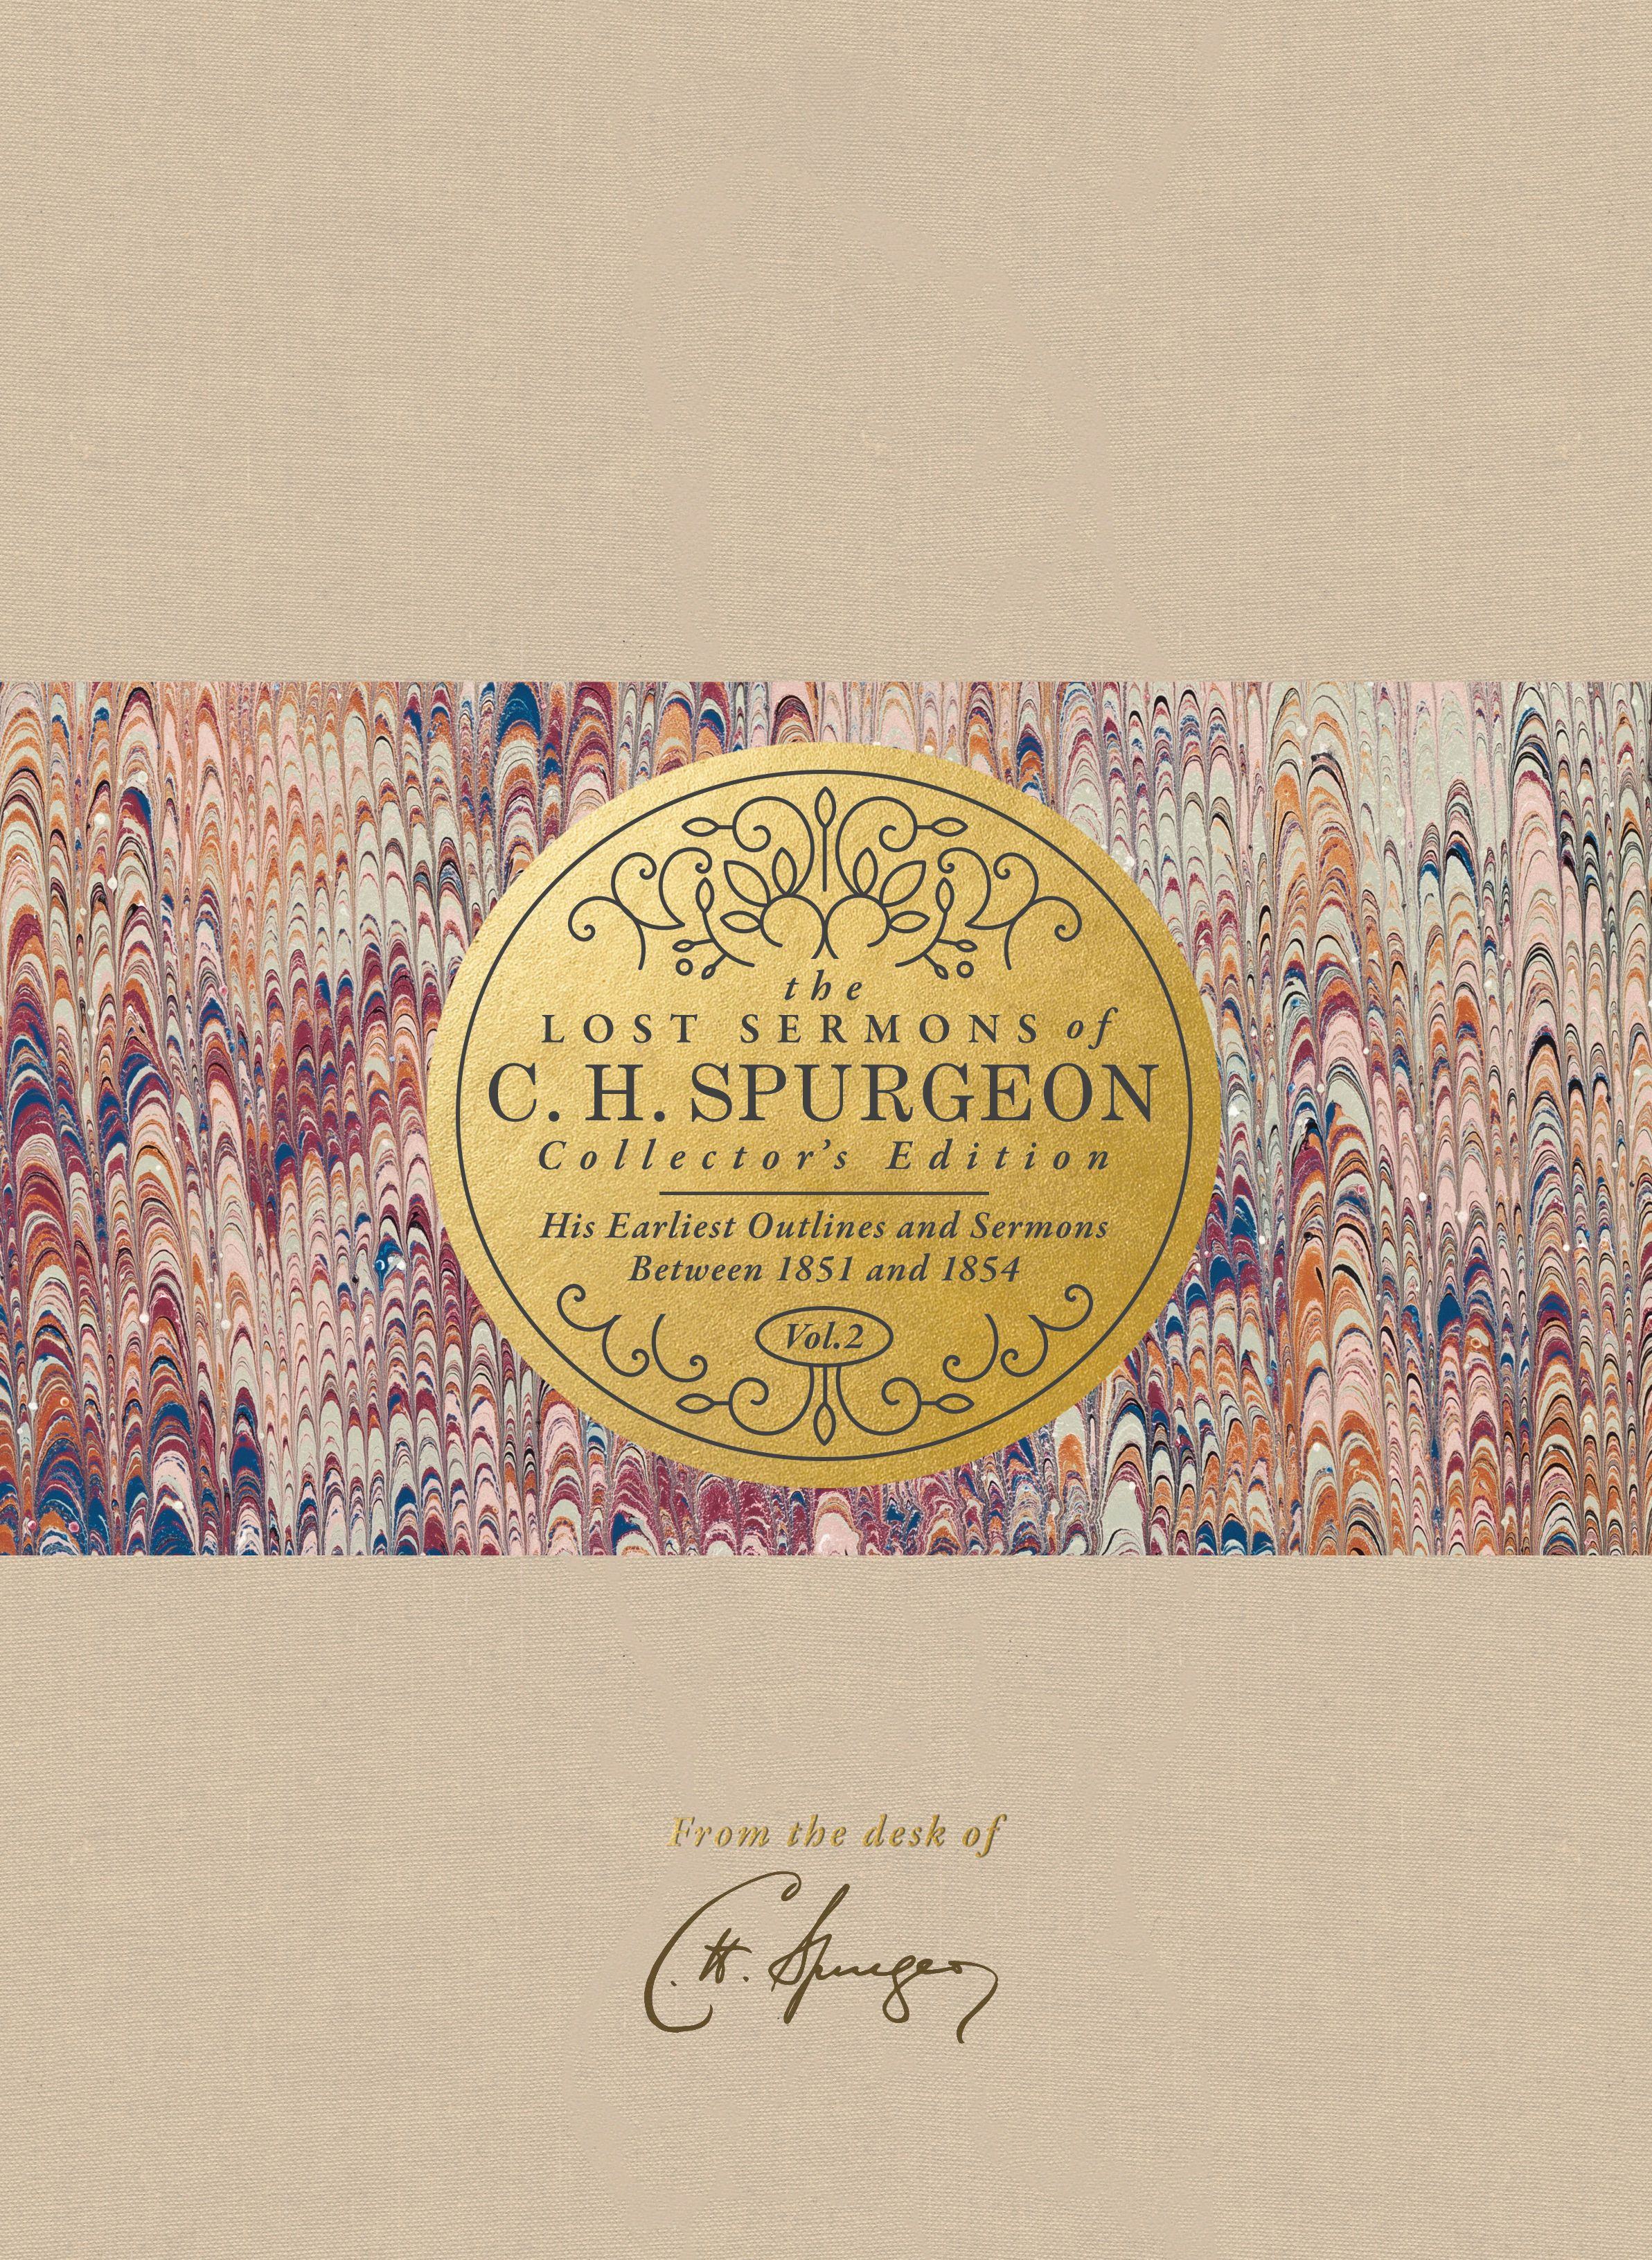 The Lost Sermons of C. H. Spurgeon Volume II